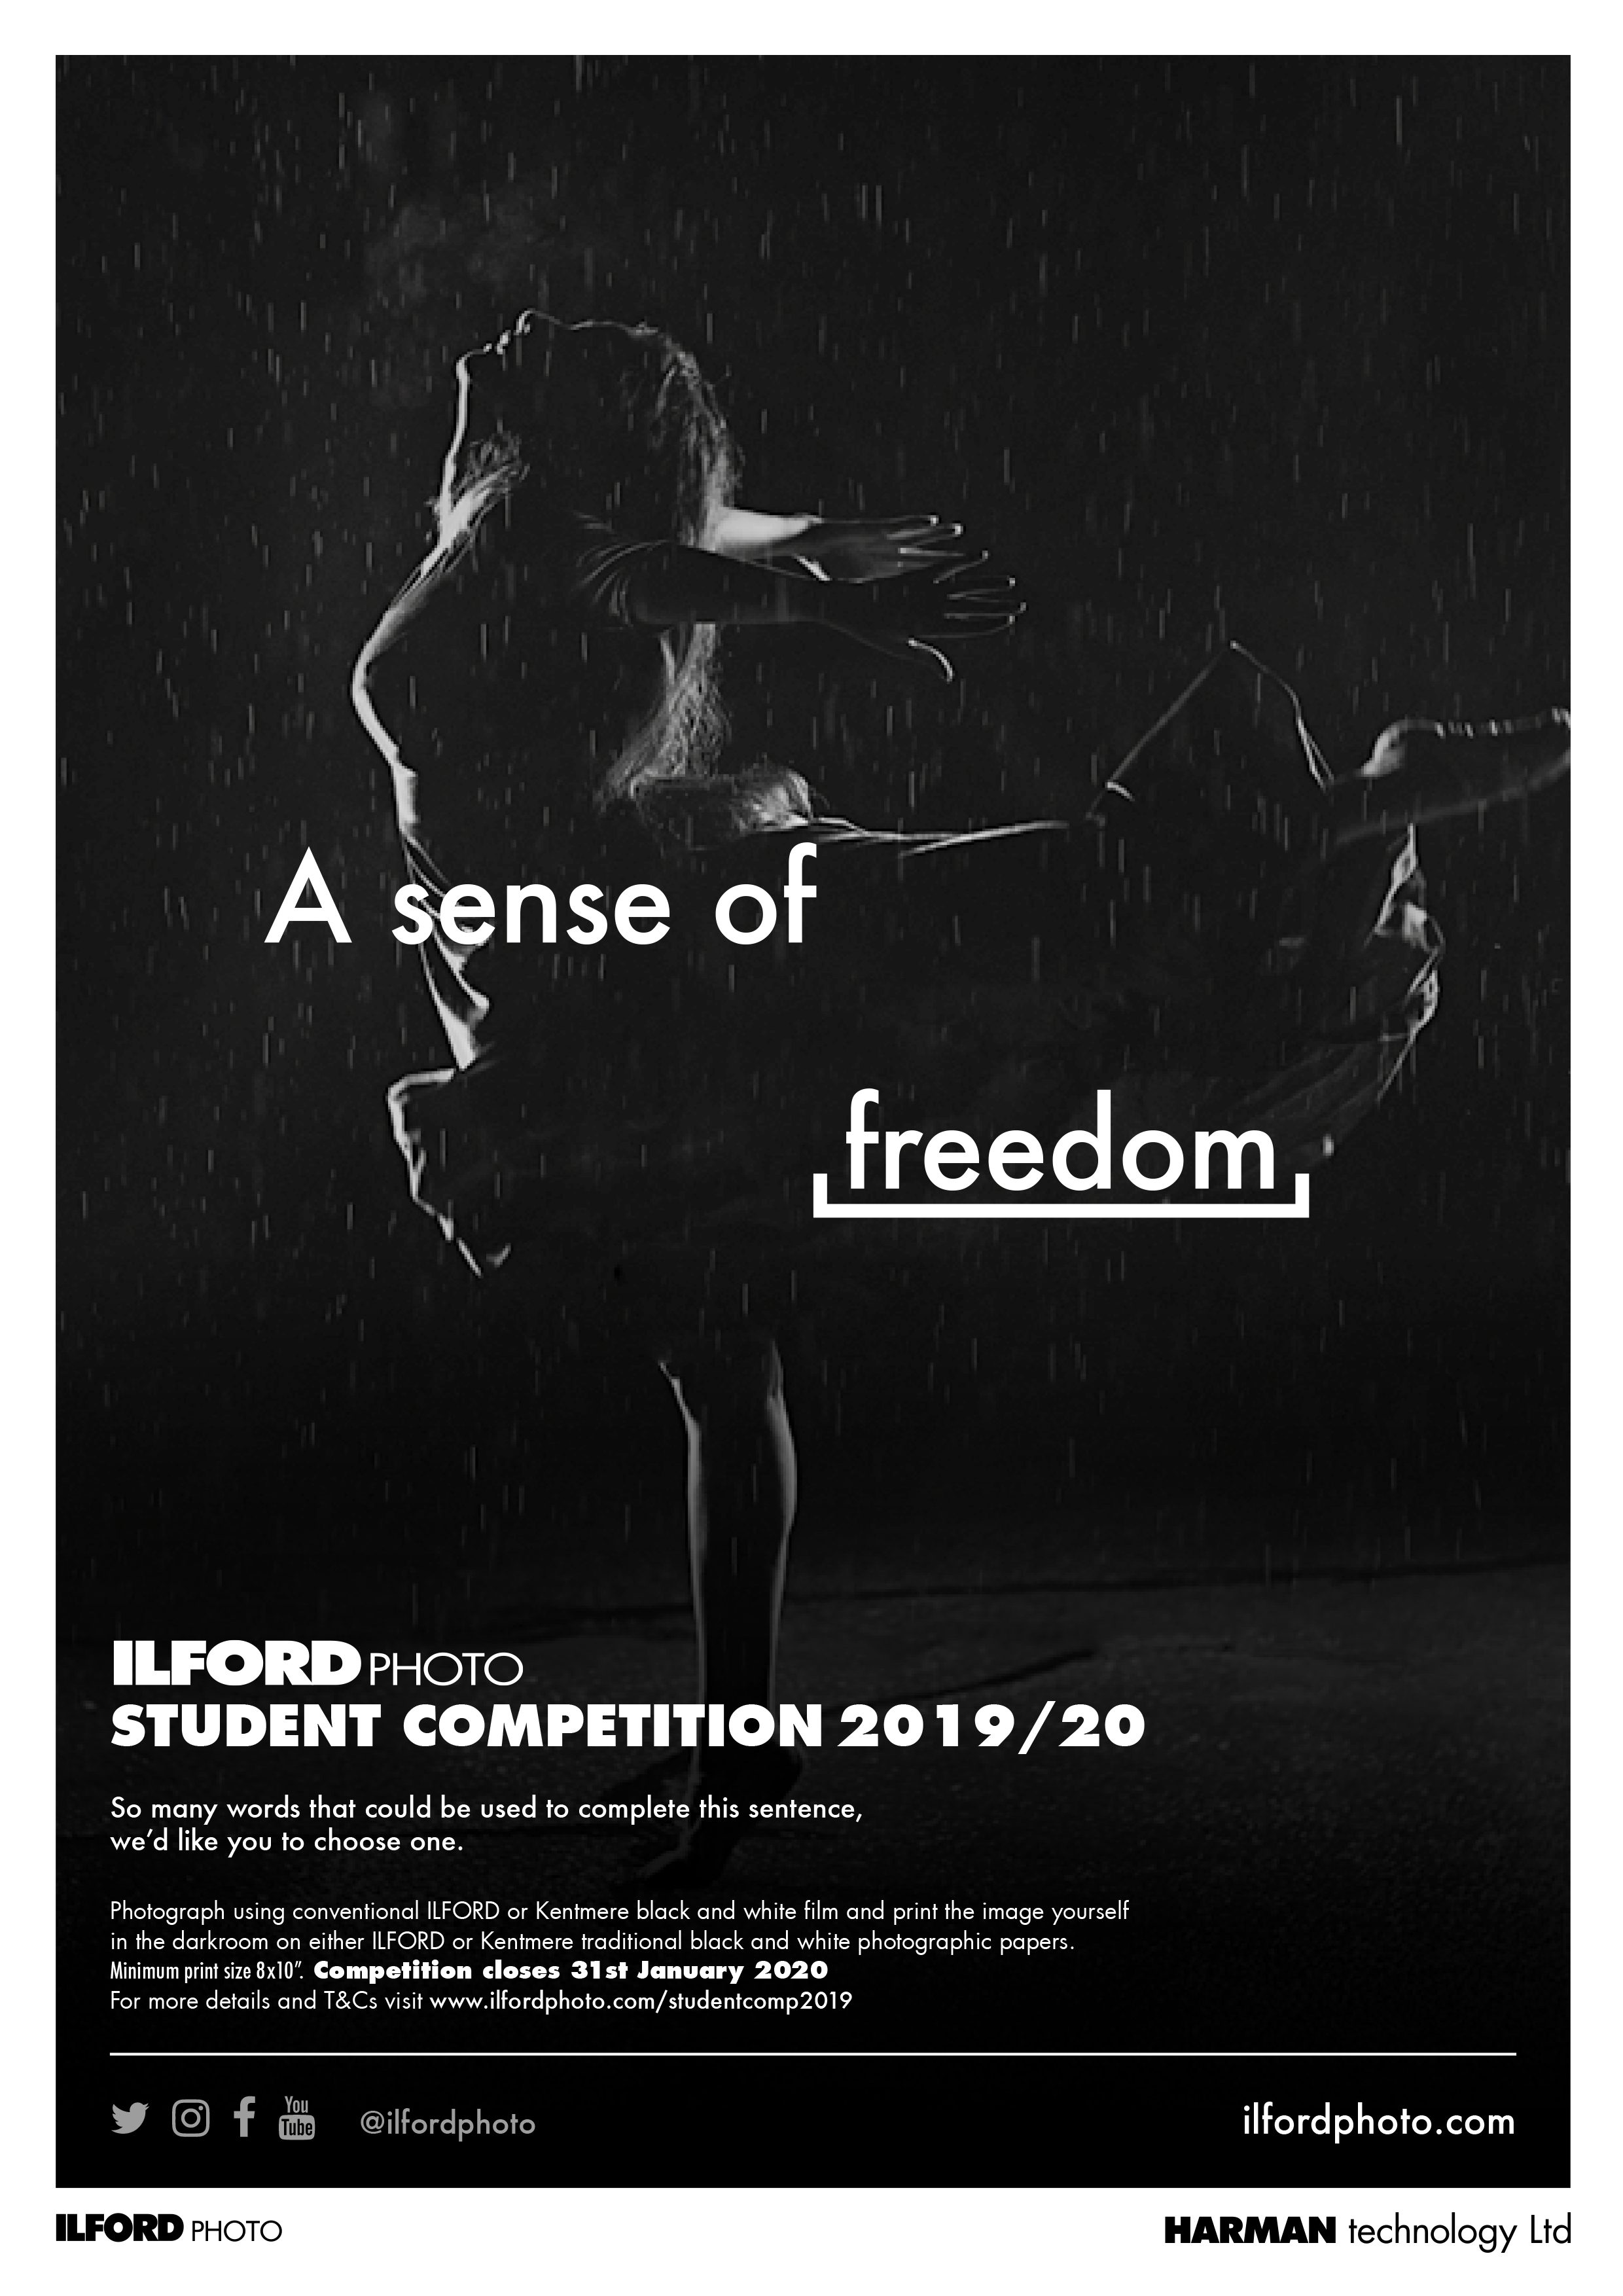 A sense of Freedom poster for ILFORD Photo 2019 Student compet6ition